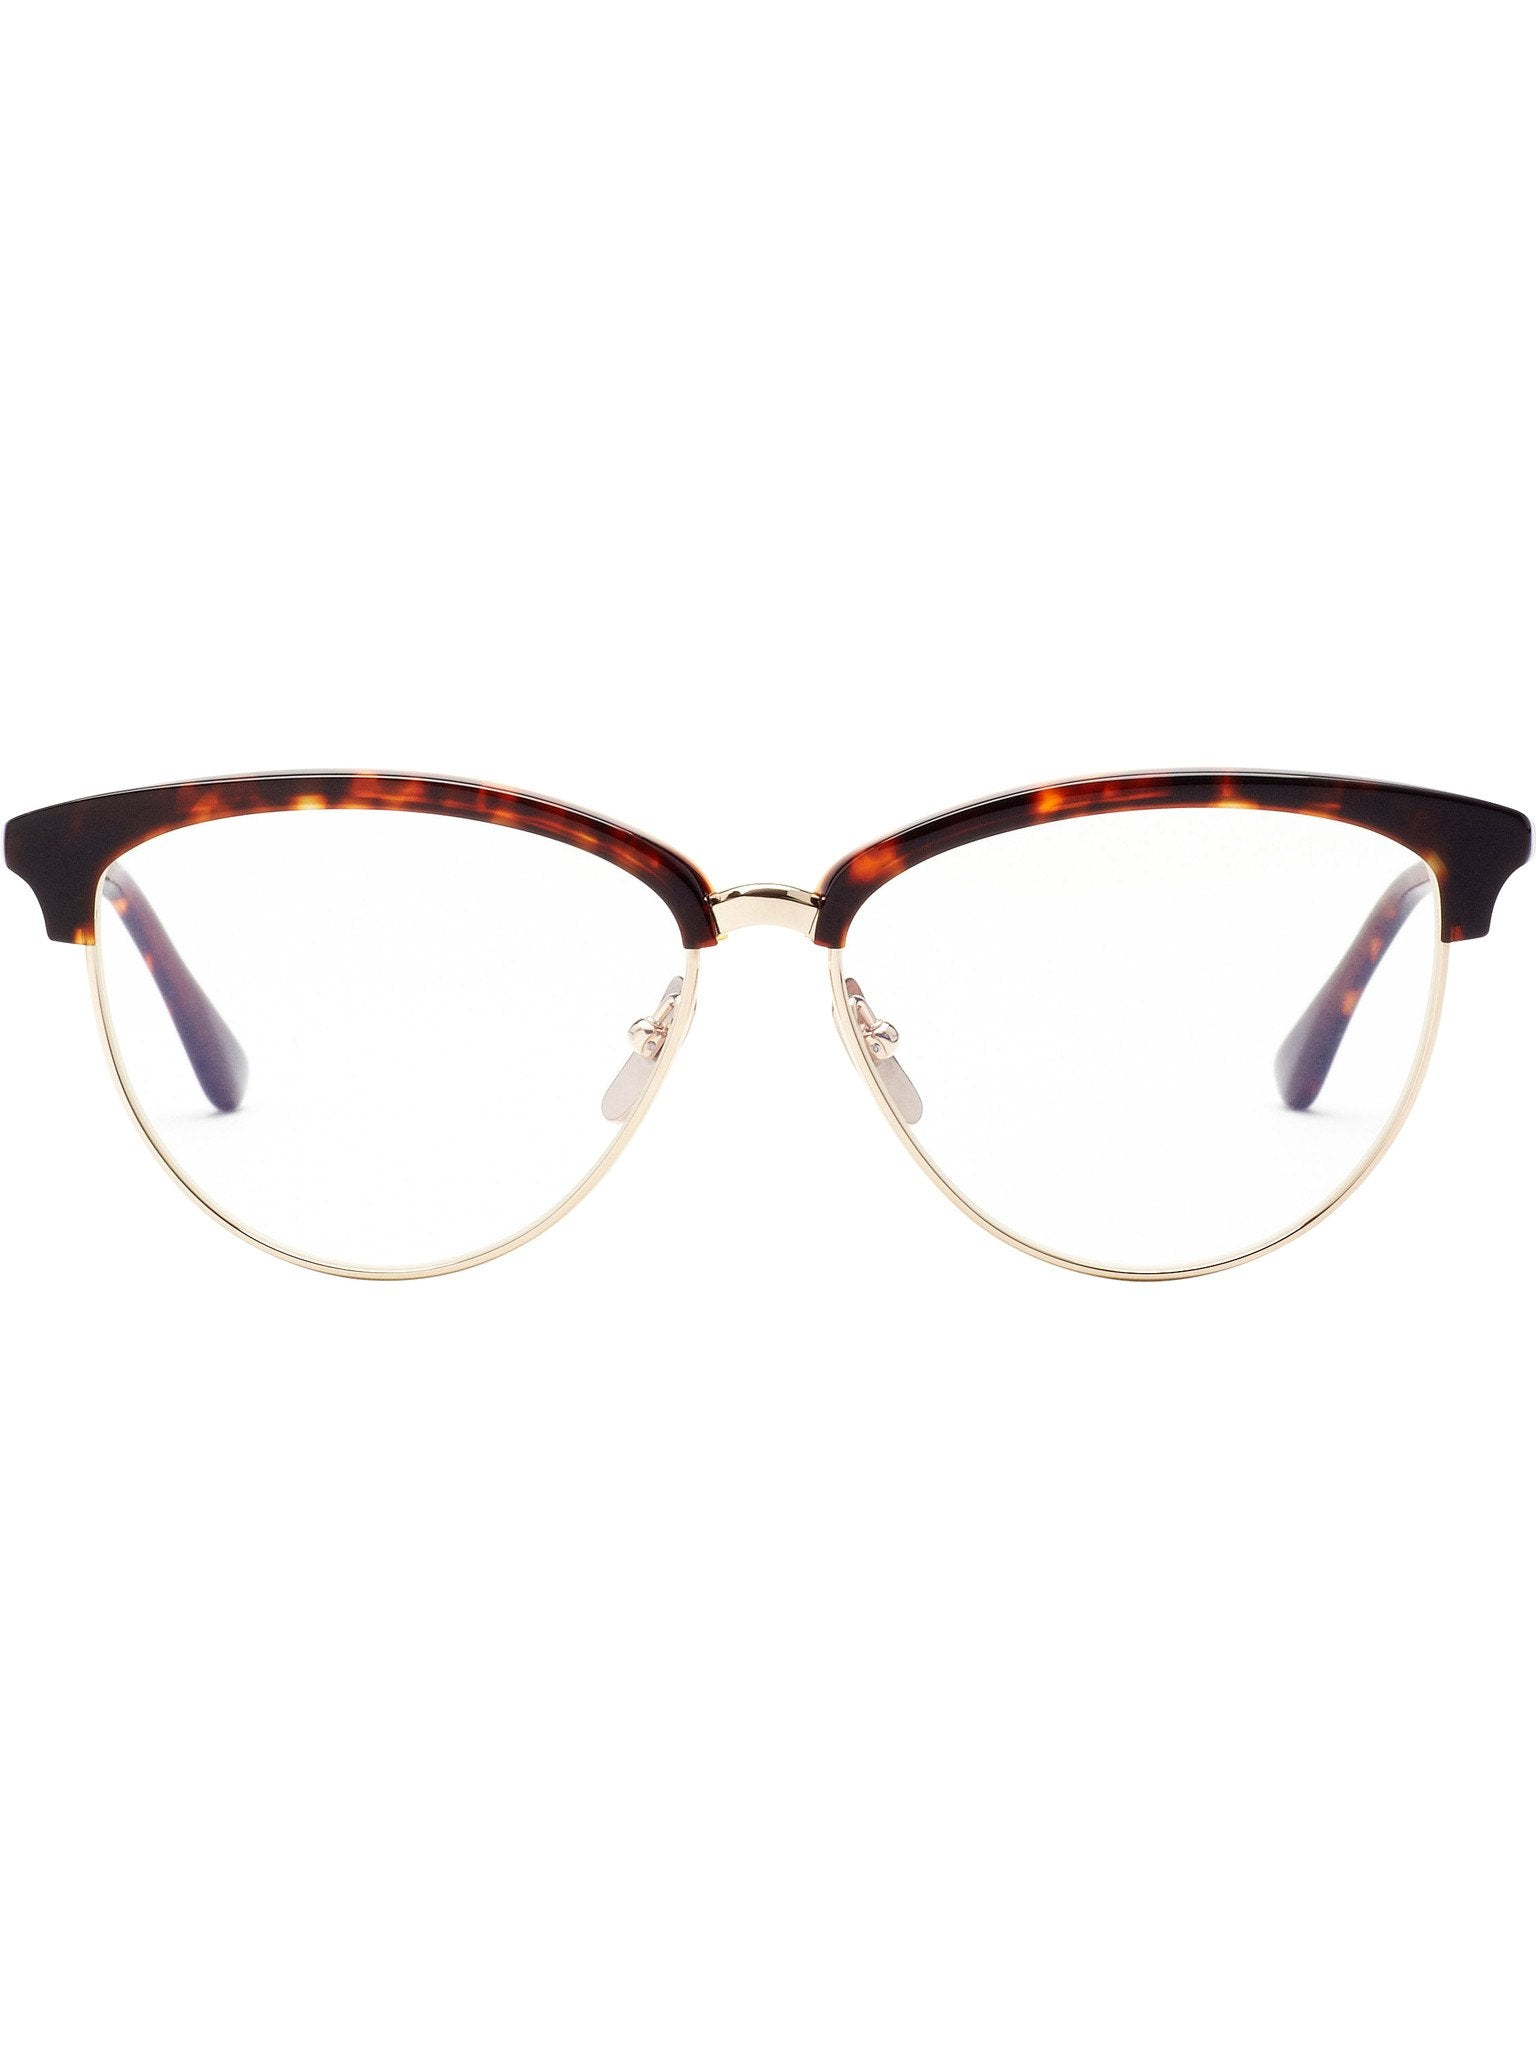 df914f9ee27 Optical Frame - Dita Reflection DRX-3036-B Glasses